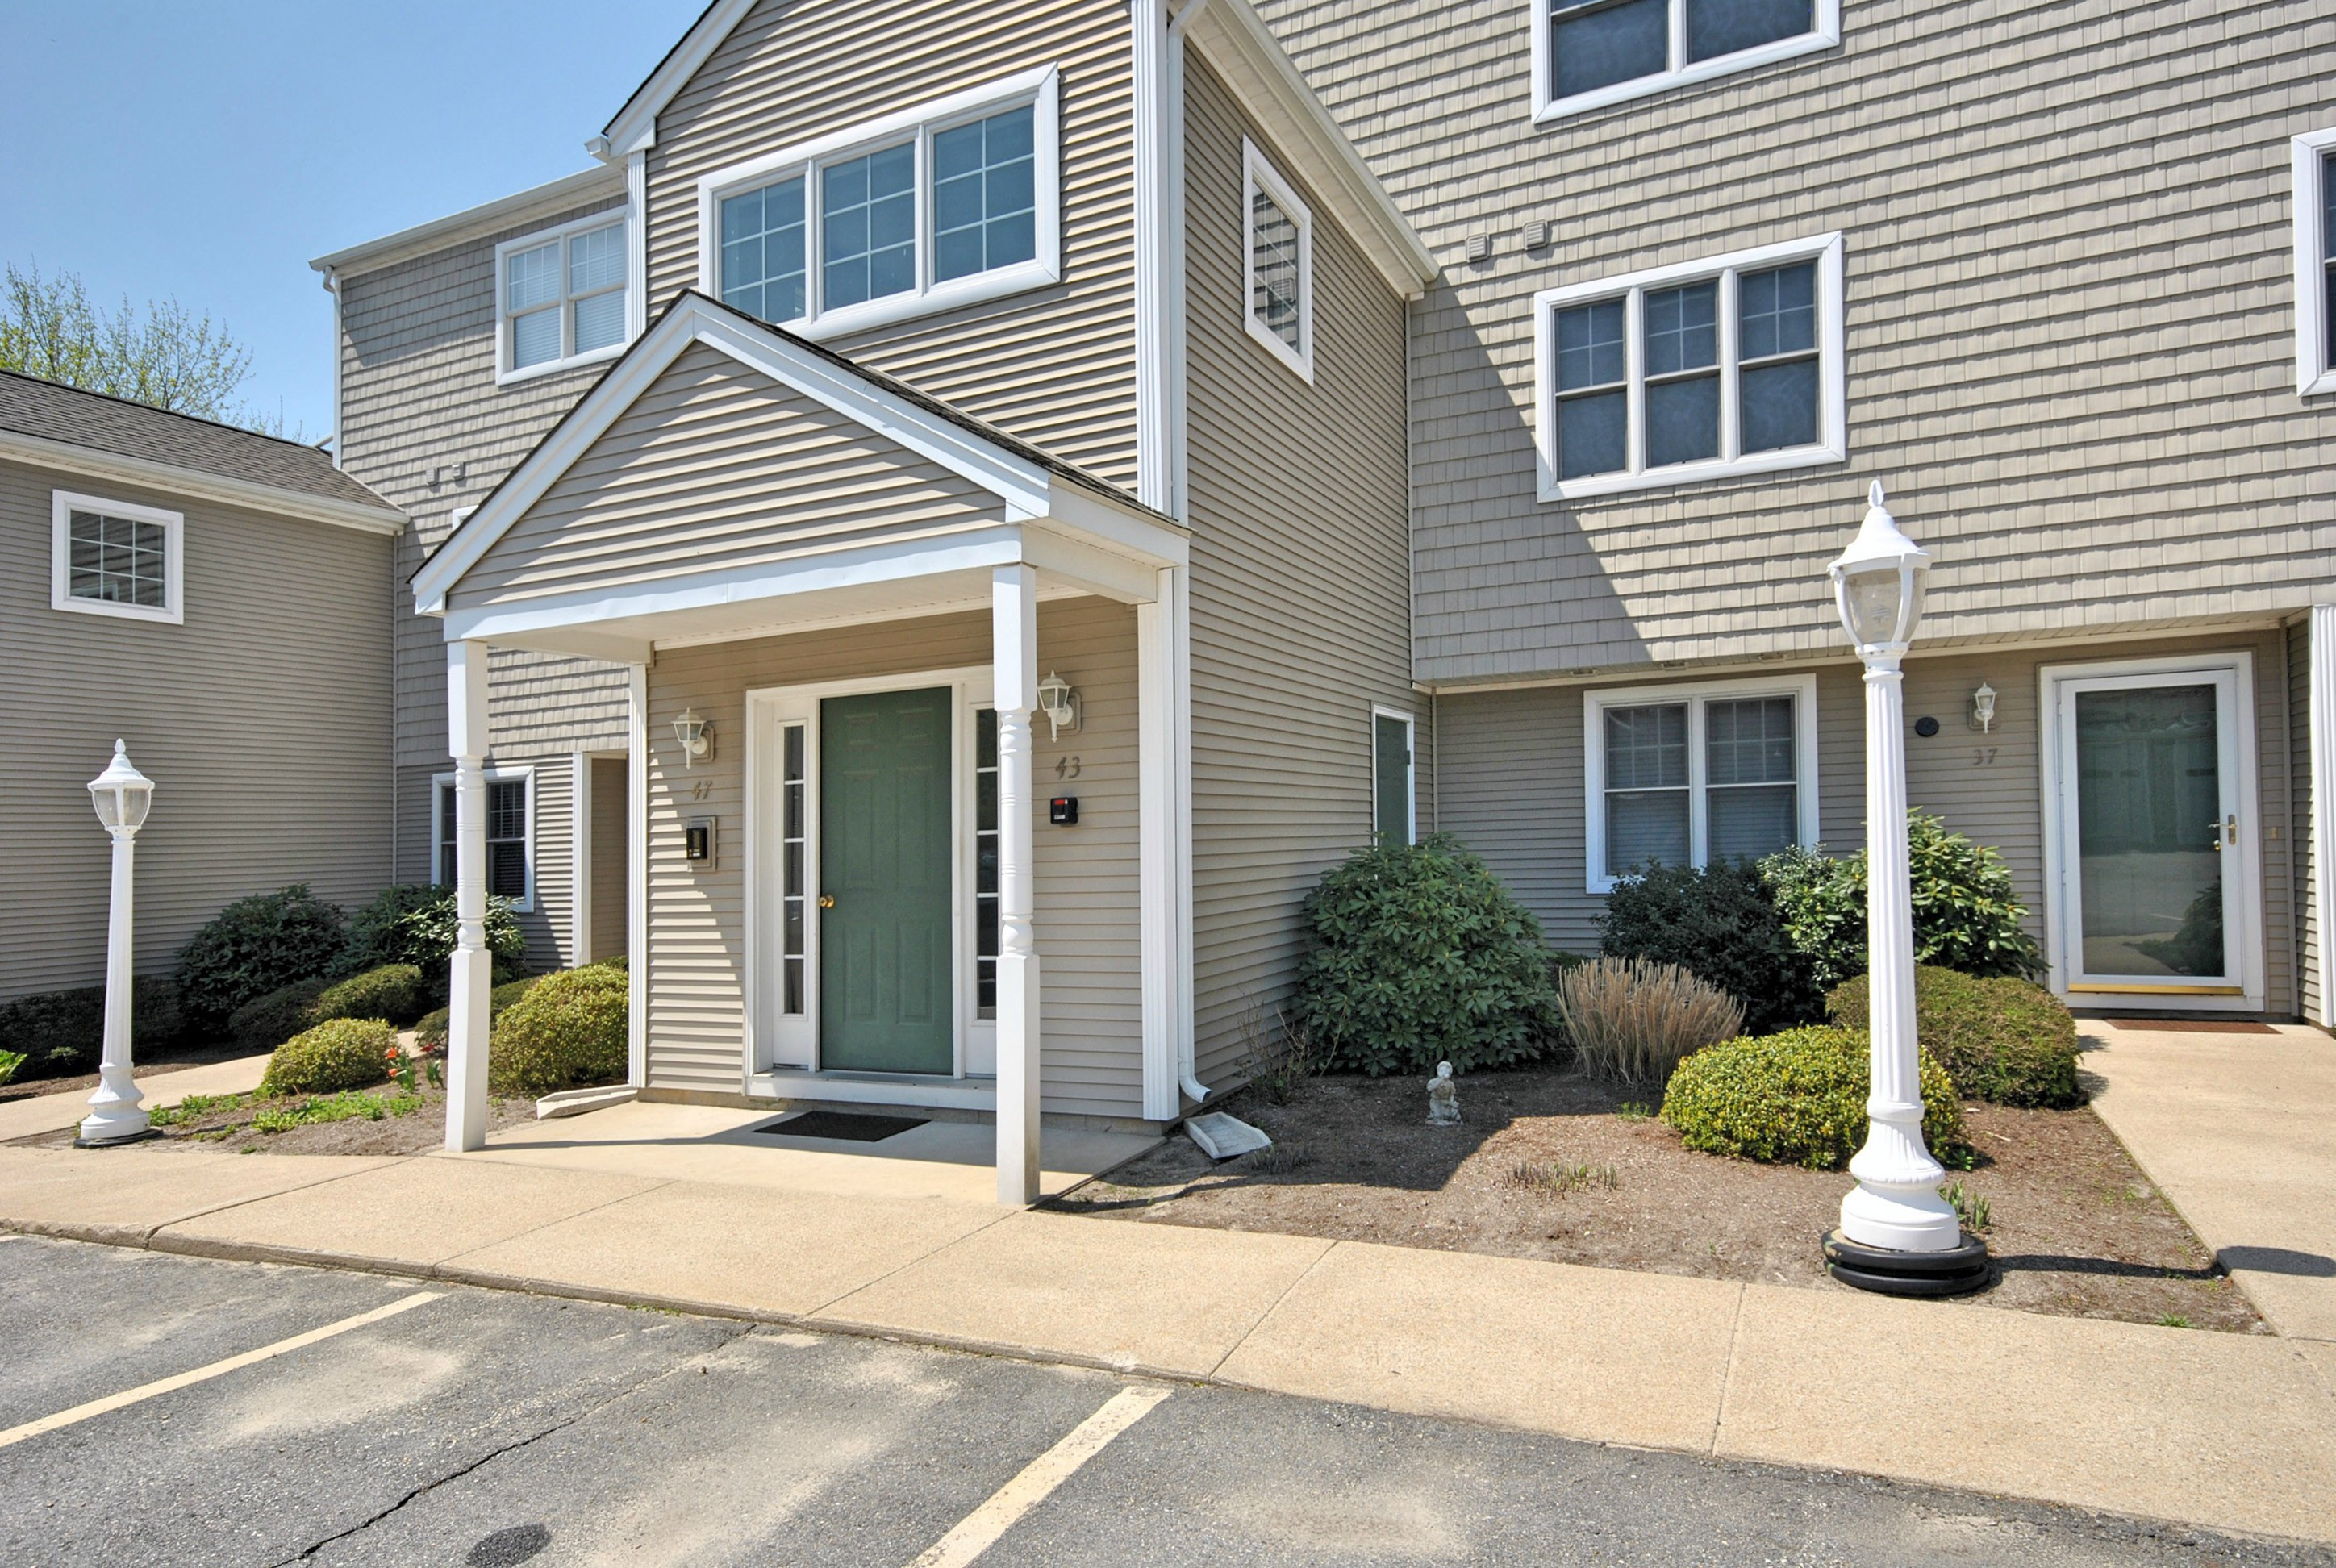 Condominium for Sale at Arborview 47 Ansonia Avenue Bristol, Rhode Island 02809 United States